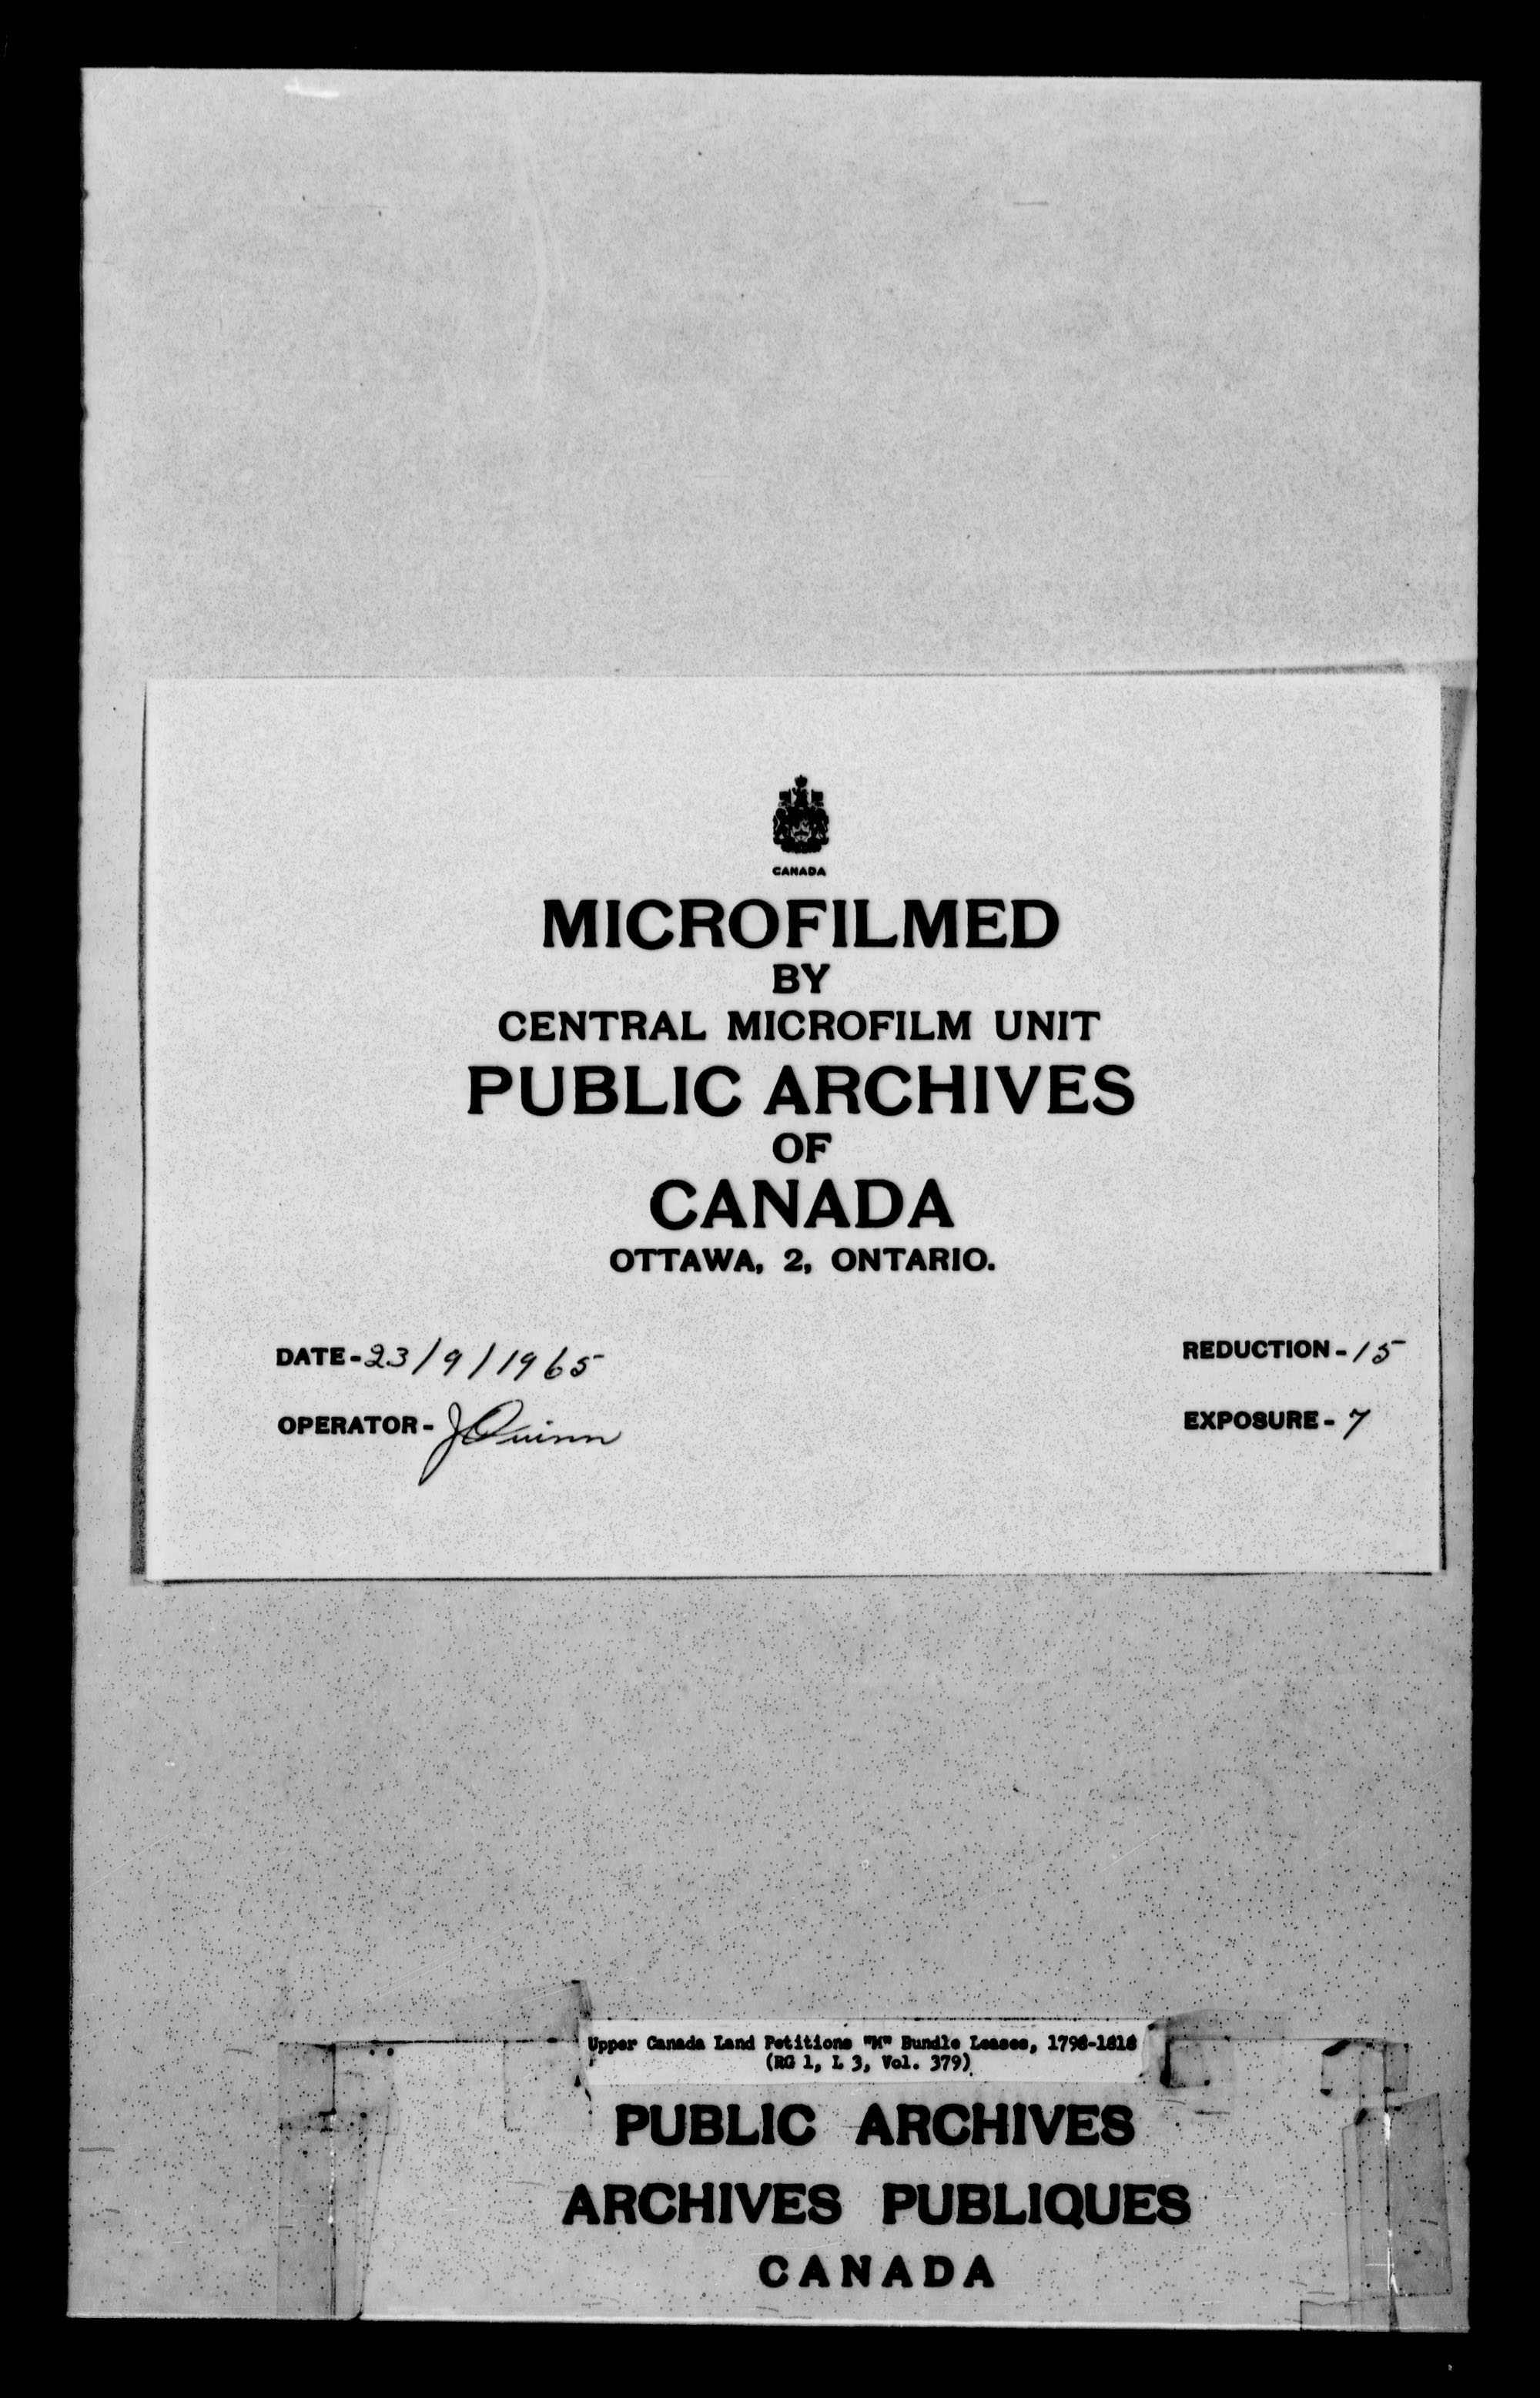 Title: Upper Canada Land Petitions (1763-1865) - Mikan Number: 205131 - Microform: c-2235